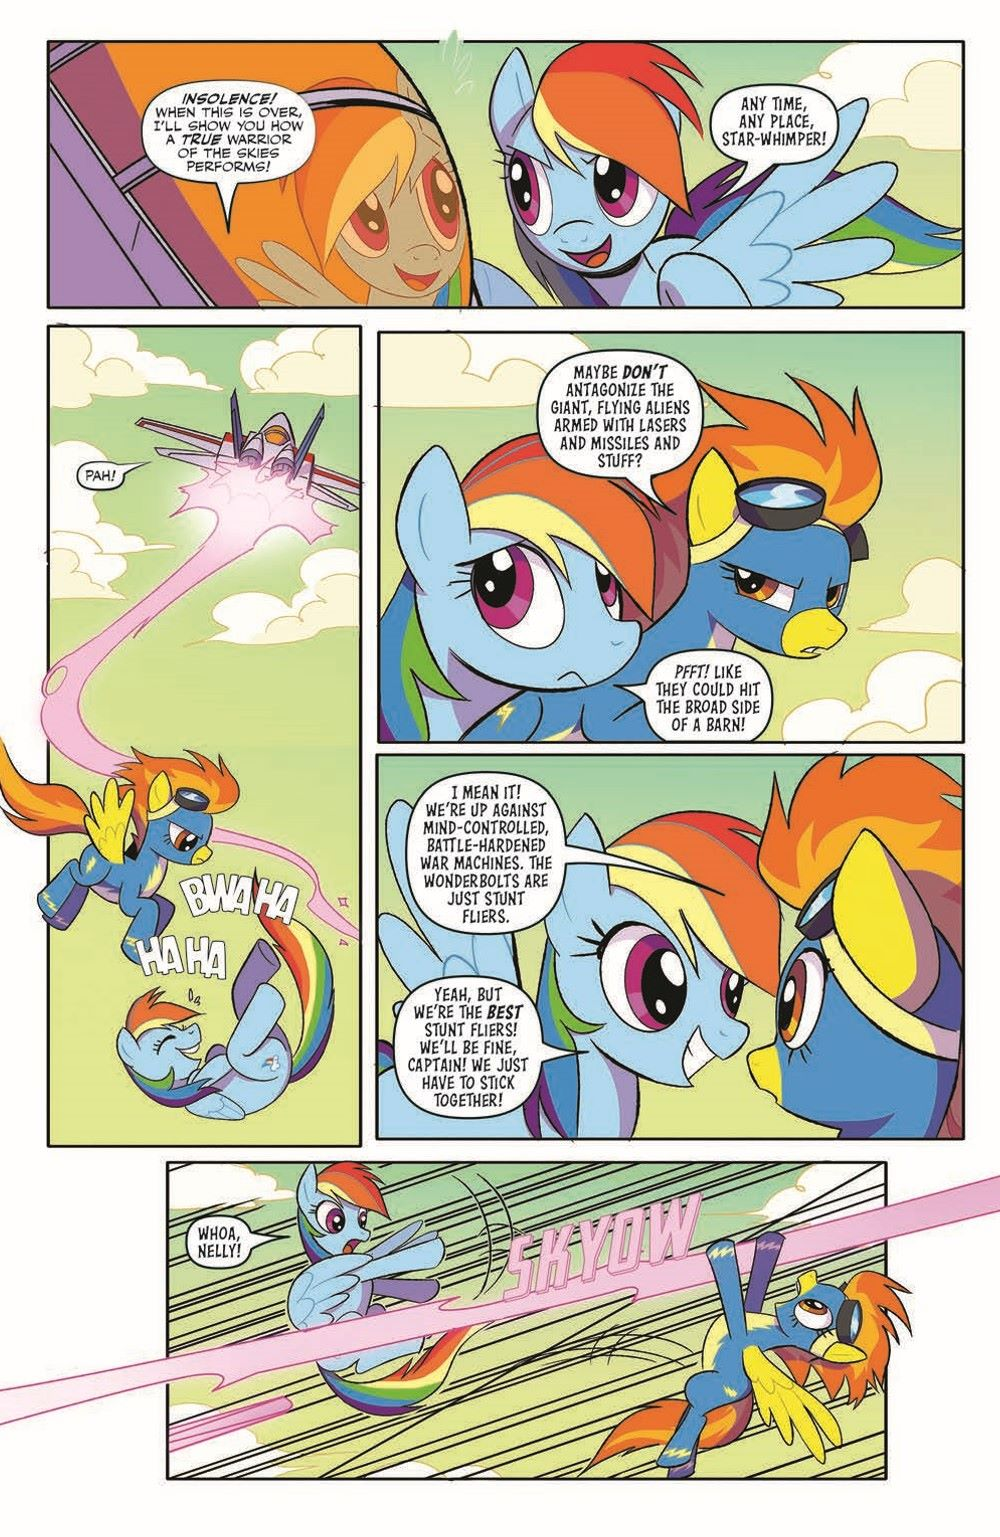 TFMLP2-02-pr-4 ComicList Previews: MY LITTLE PONY TRANSFORMERS II #2 (OF 4)